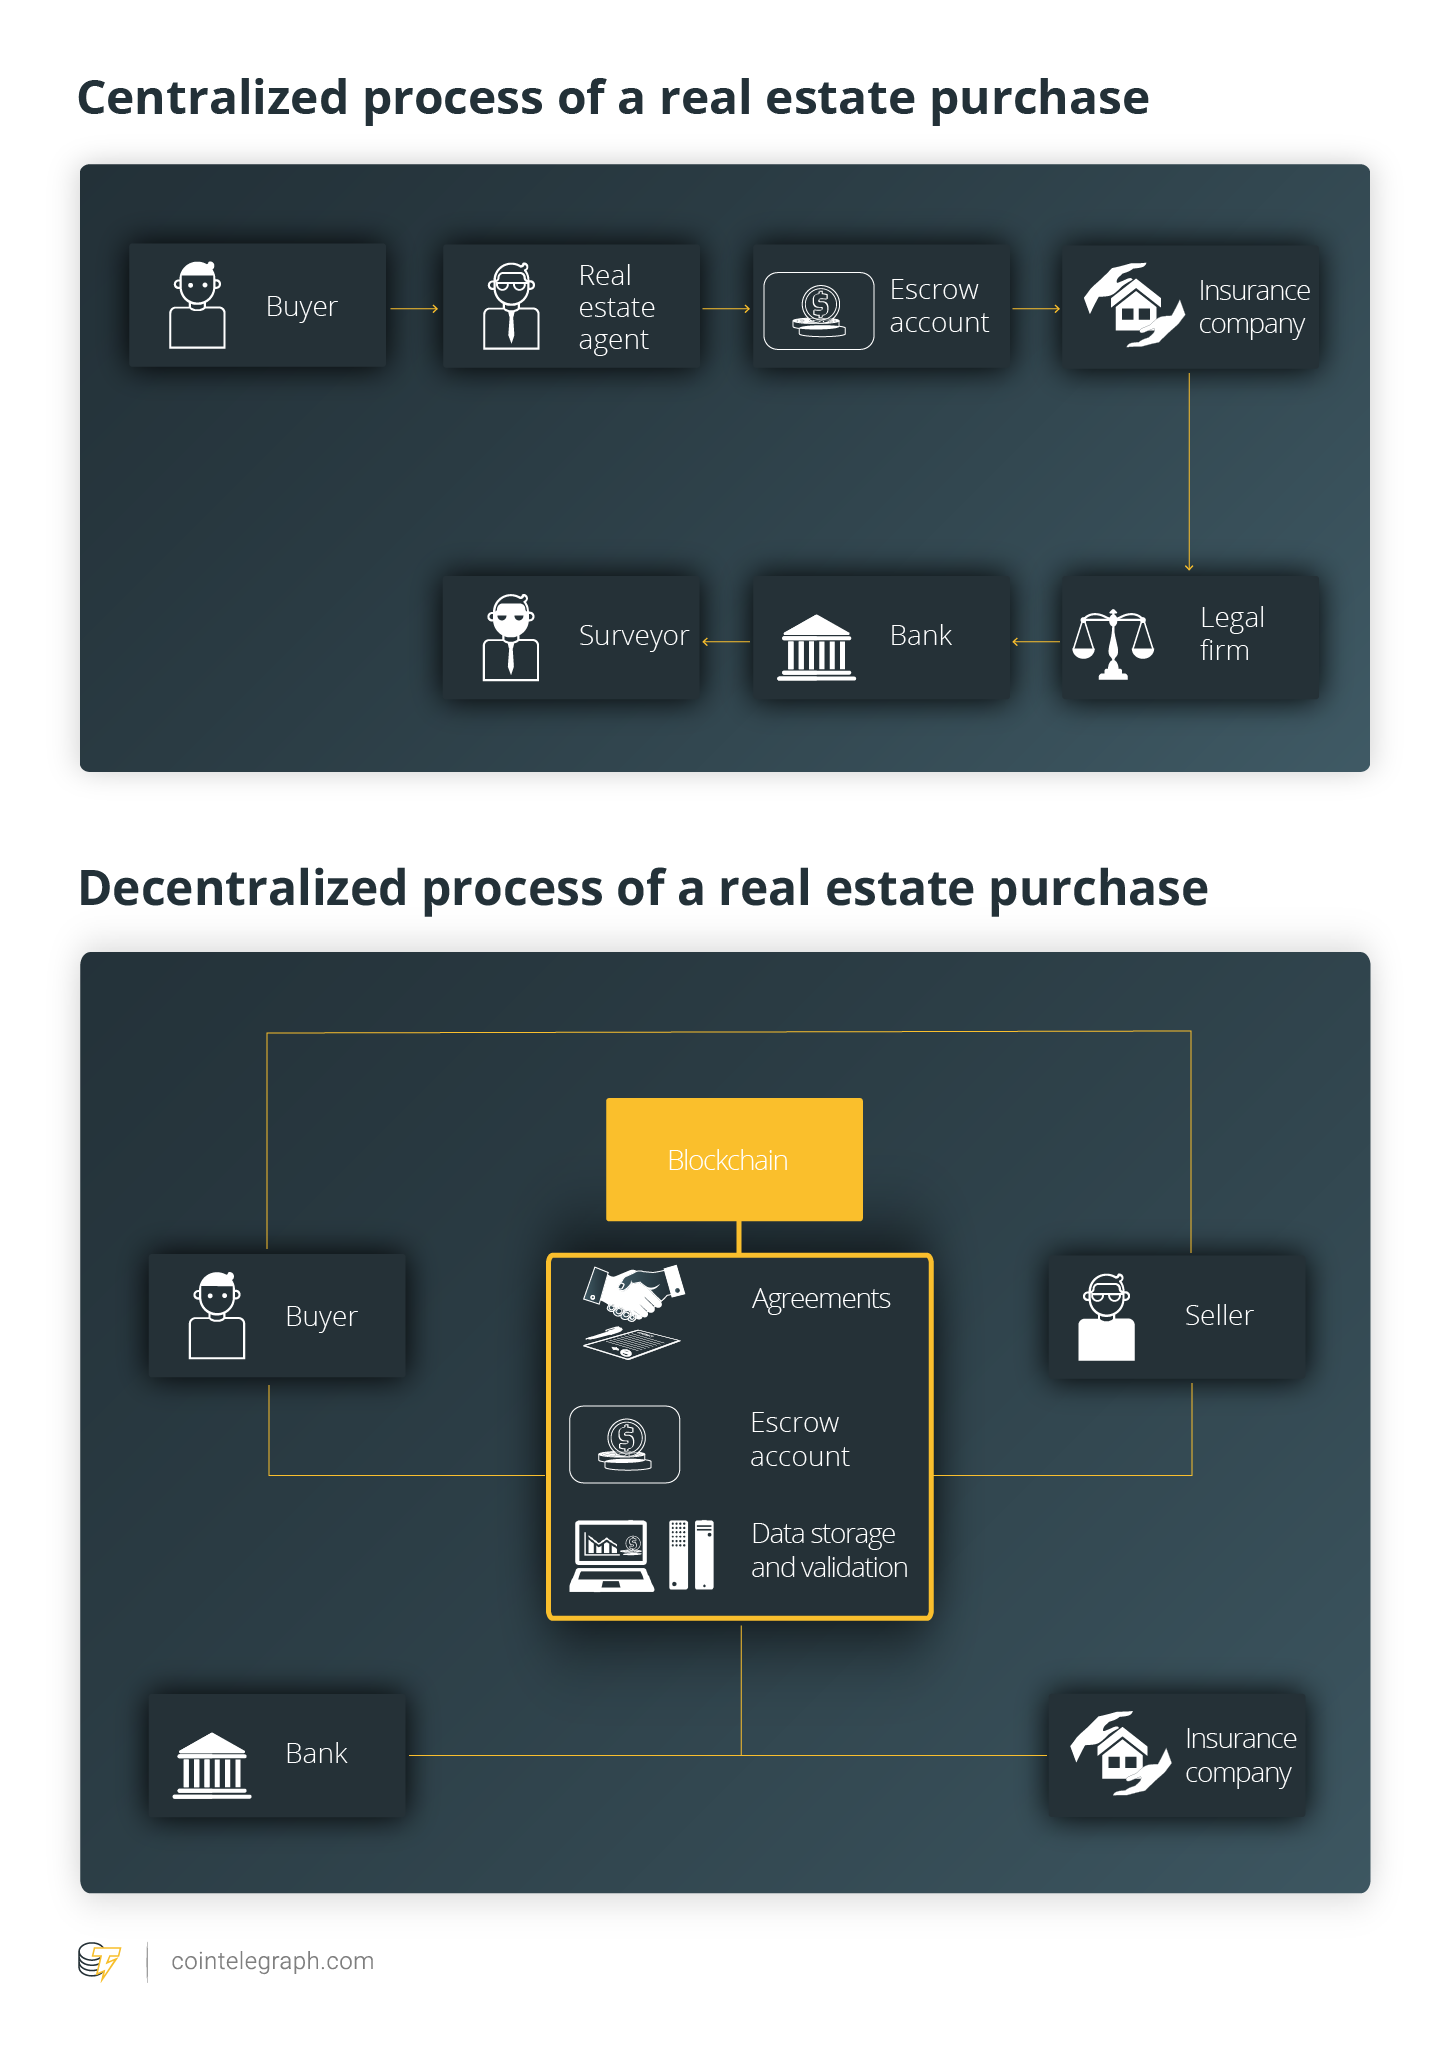 Centralized process of a real estate purchase / Decentralized process of a real estate purchase